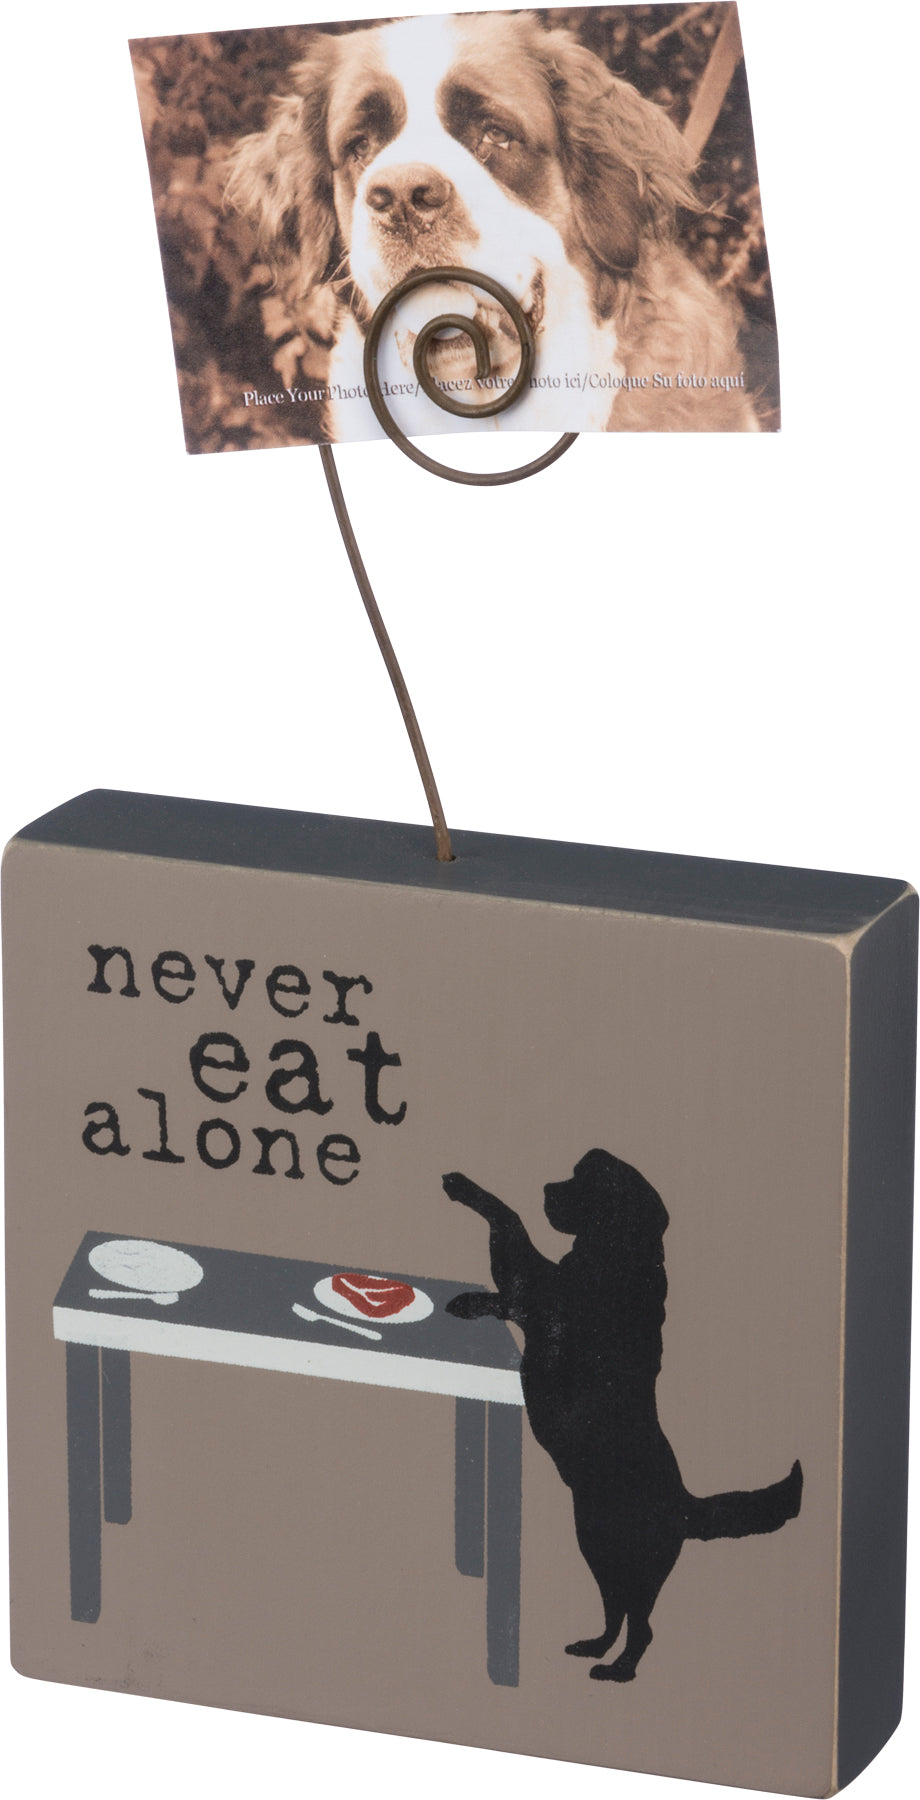 Box Frame - Never Eat Alone